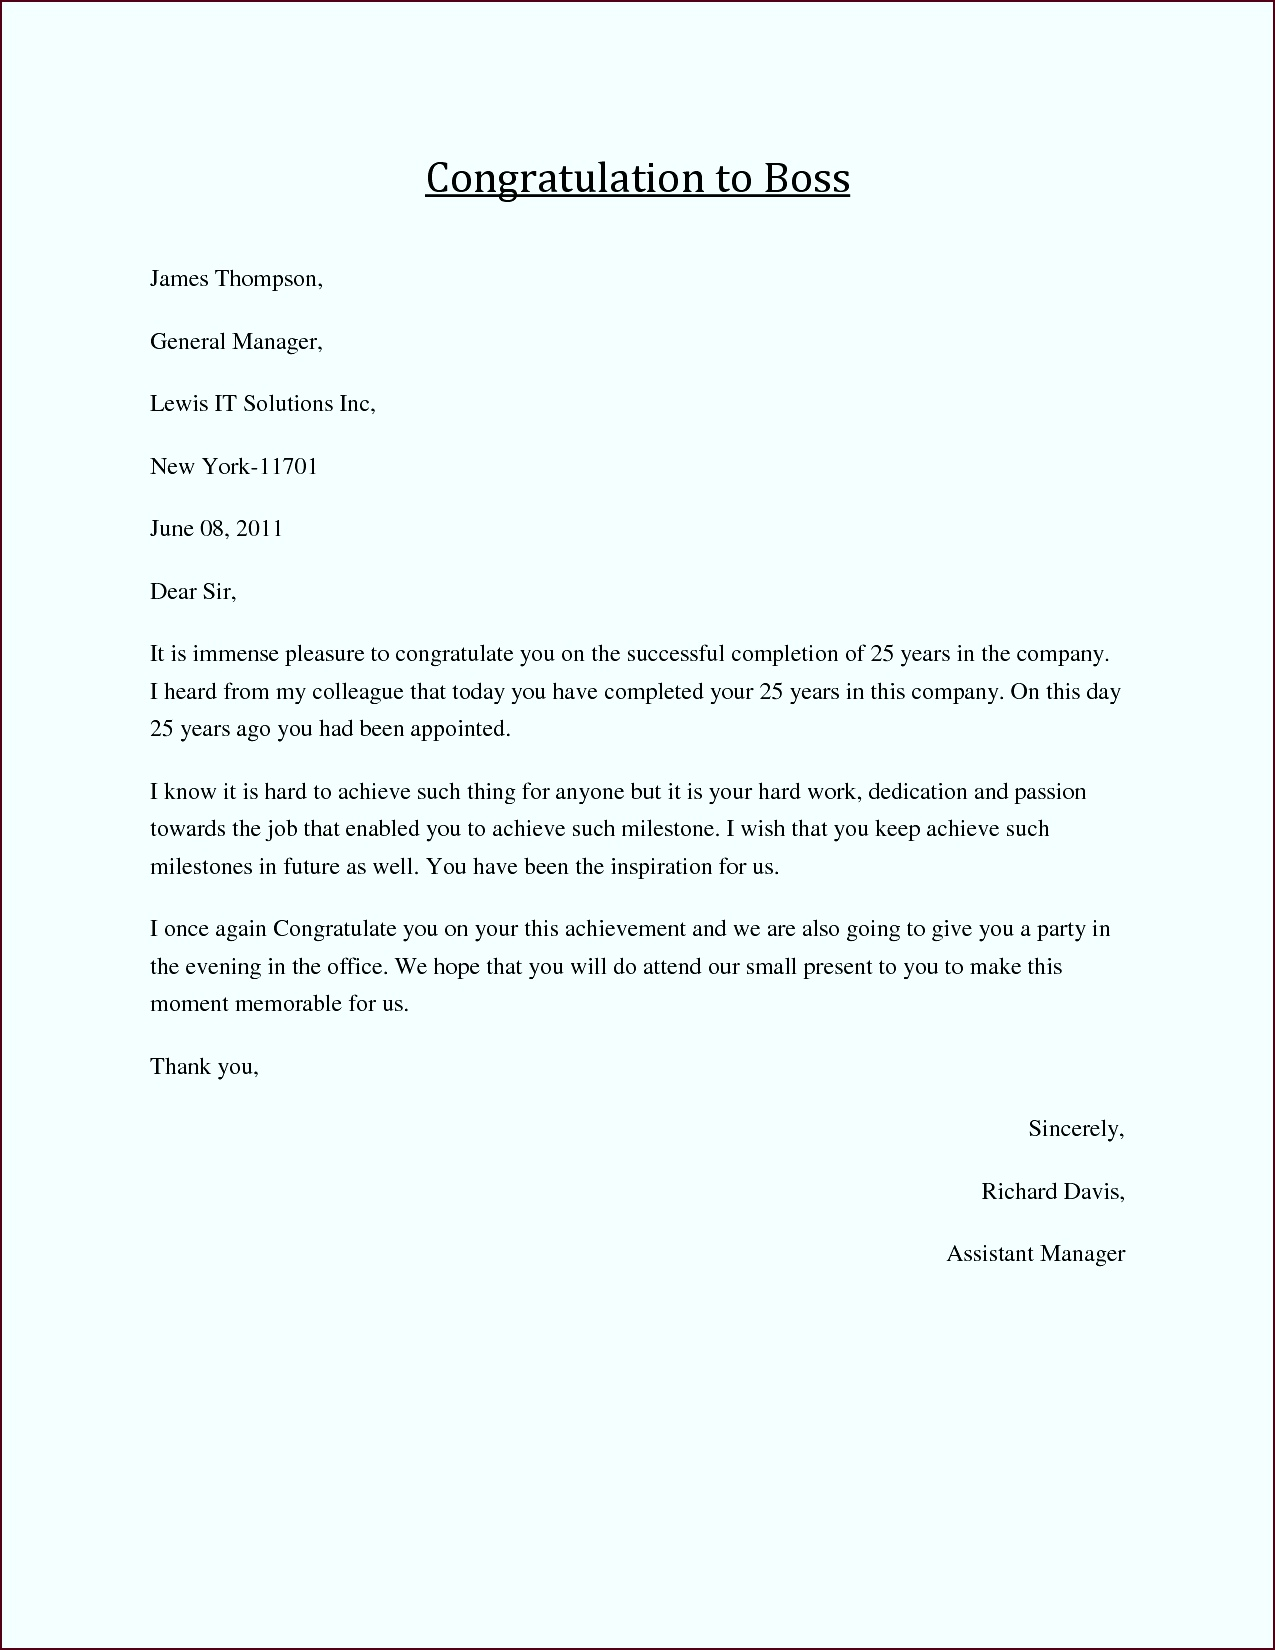 Congratulations Letter to Boss Job congratulations formal business letters and greeting messages to boss ttper